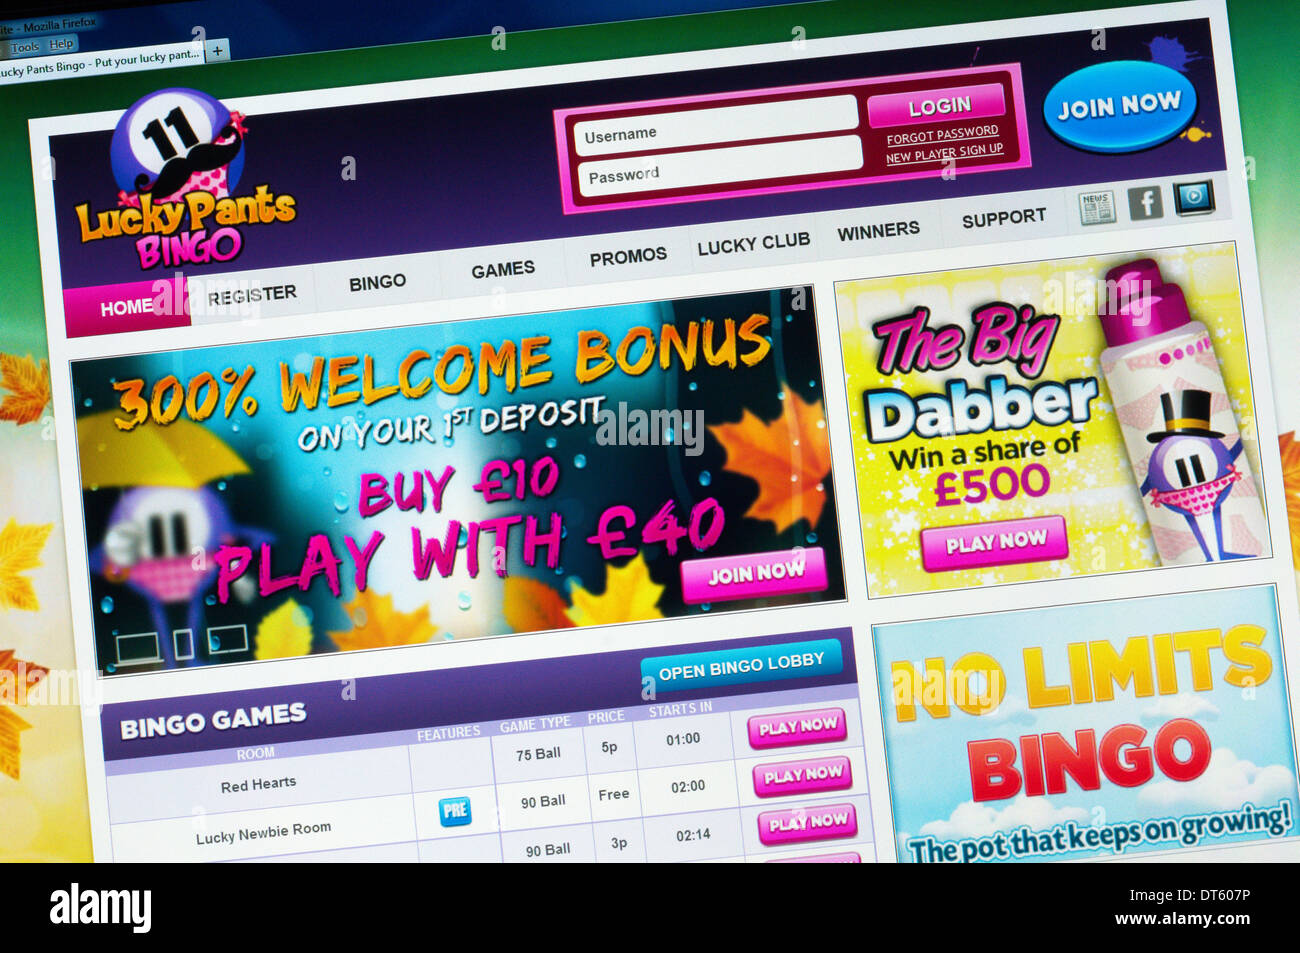 The home page of the Lucky Pants Bingo website. - Stock Image